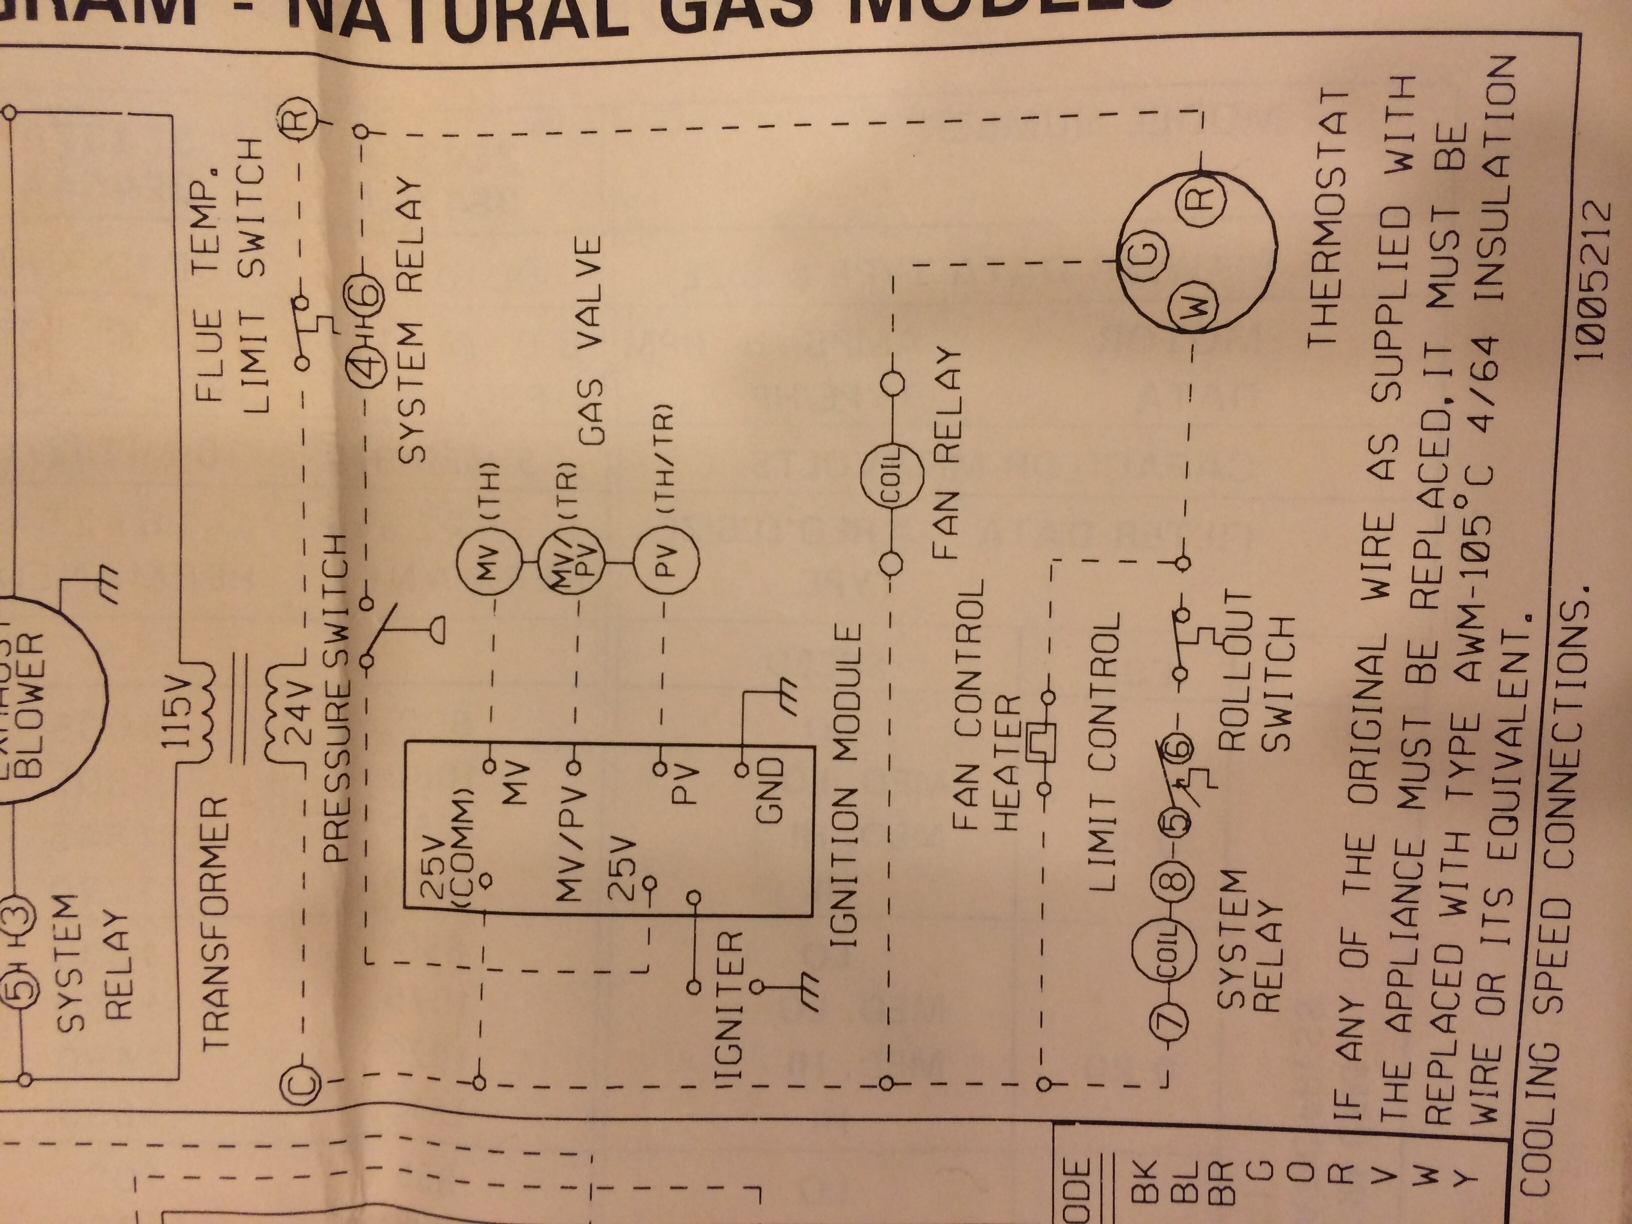 Wiring Diagram For Furnace Igniter on parts for furnace, fuel pump for furnace, valve for furnace, exhaust for furnace, sensor for furnace, fuse for furnace, switch for furnace, control panel for furnace, generator for furnace, thermostat for furnace, motor for furnace, solenoid for furnace, regulator for furnace, earthing system for furnace, timer for furnace, wiring-diagram older furnace, air cleaner for furnace, relay for furnace, capacitor for furnace, oil pump for furnace,